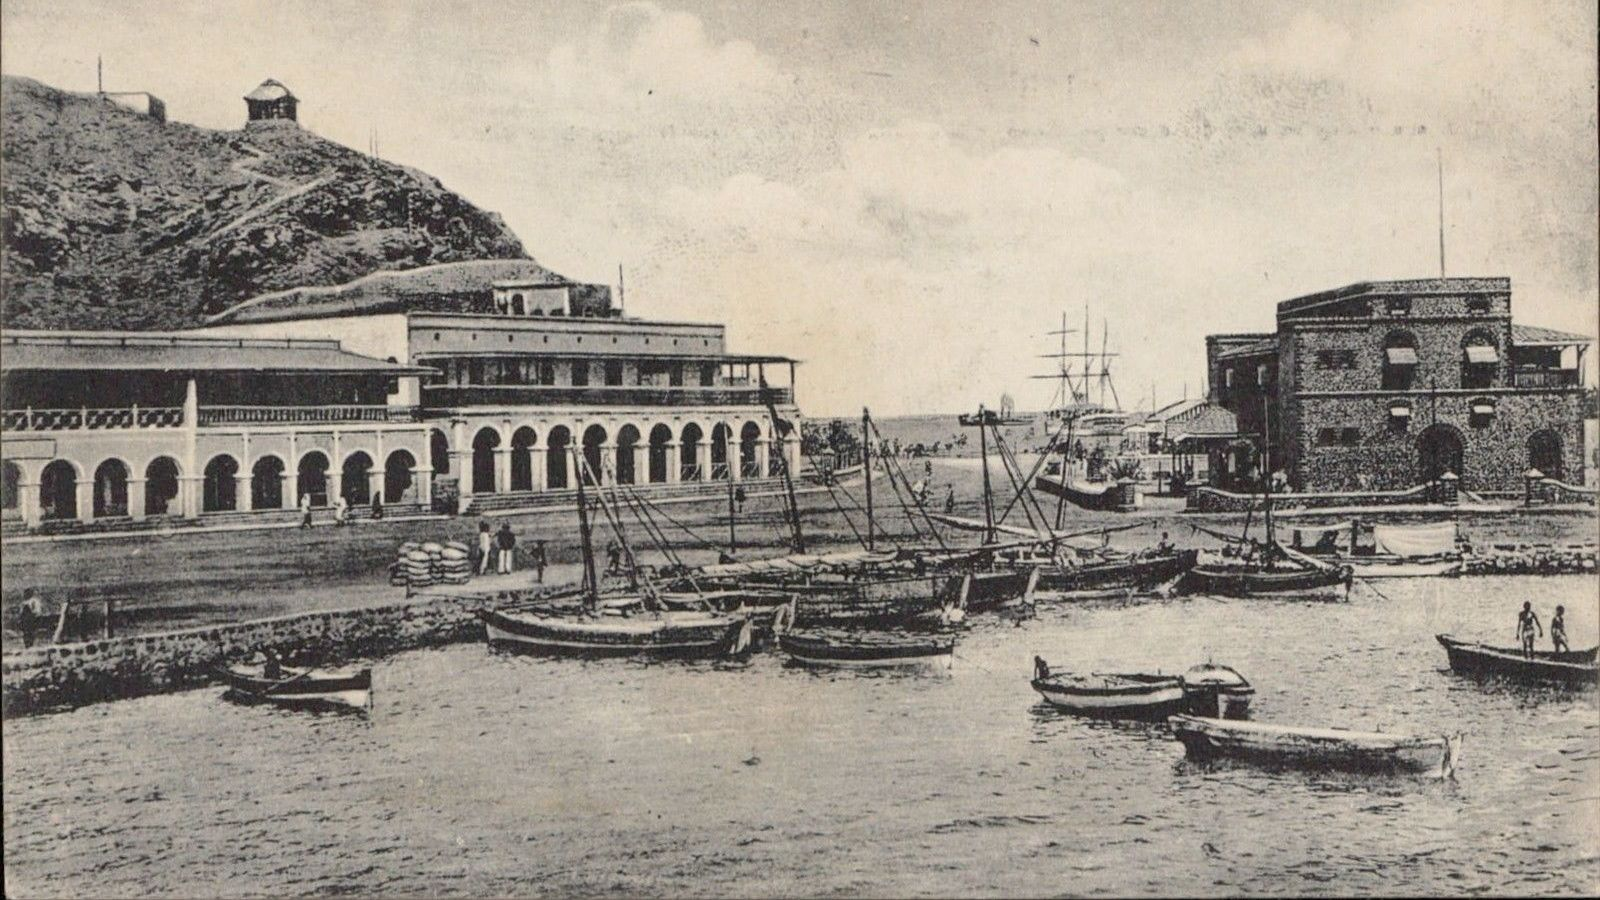 Aden: Pivot of the East and West